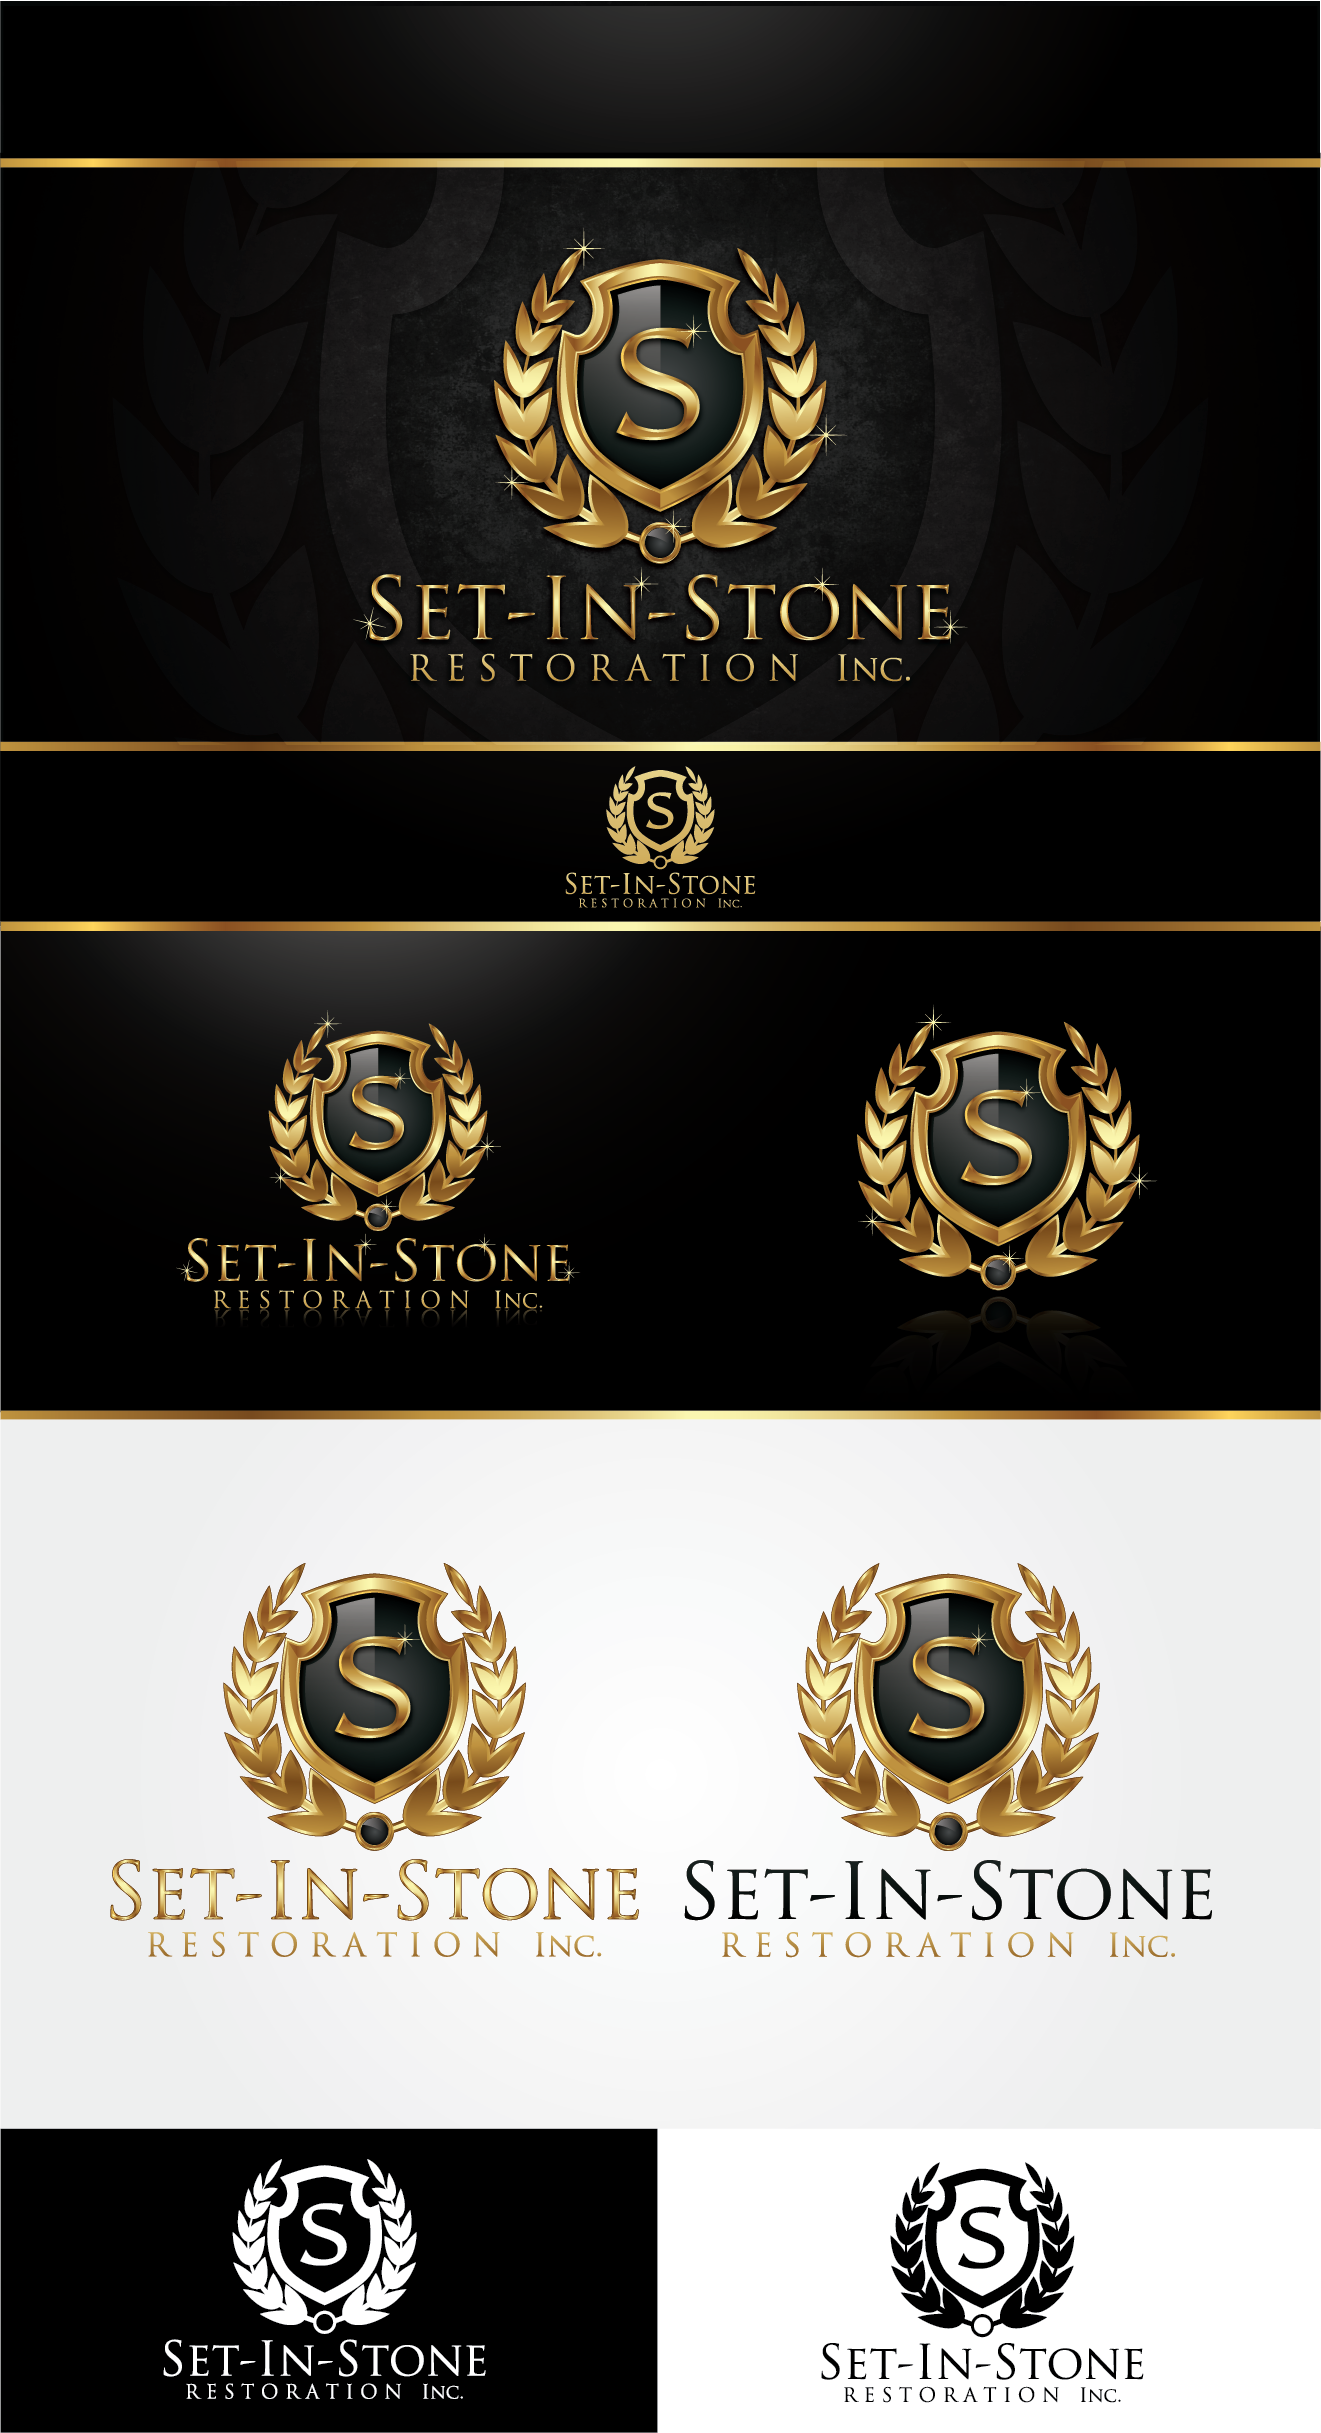 New logo wanted for Set In Stone Restoration Inc.